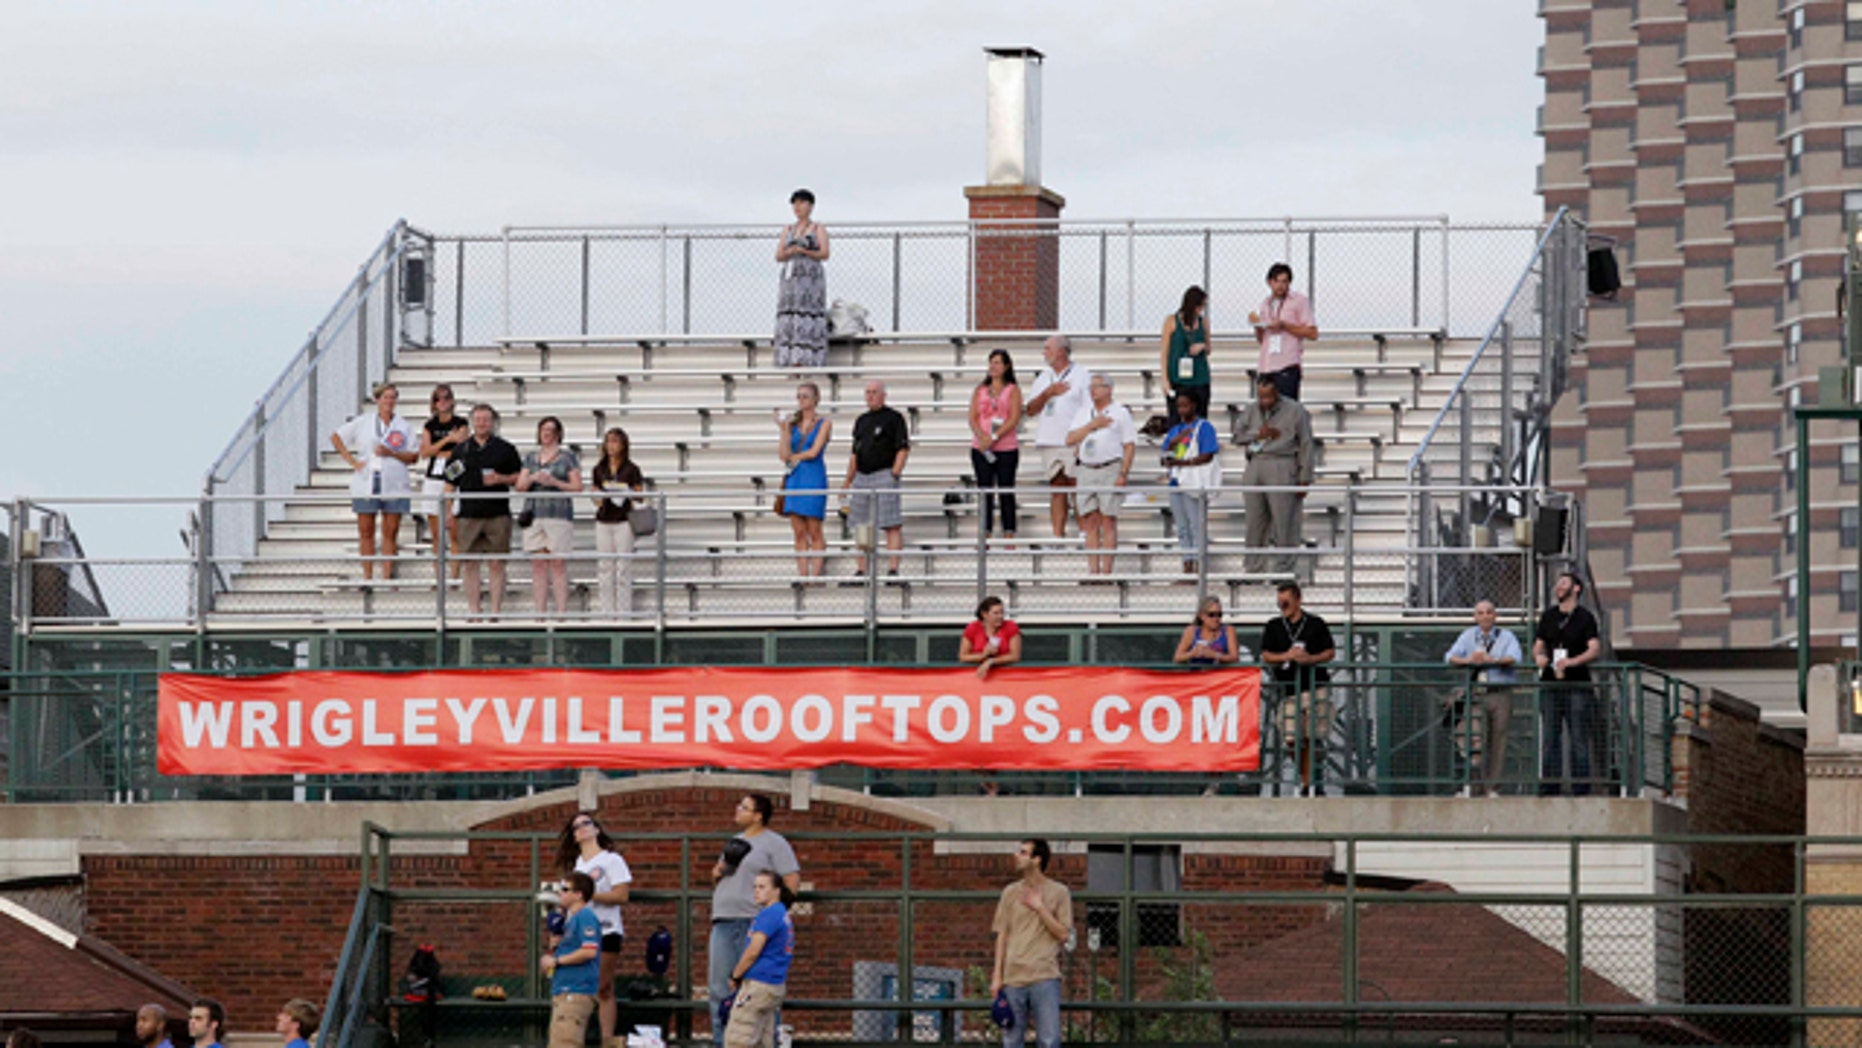 Aug. 30: Baseball fans are seen in one of the many rooftop venues outside Wrigley Field in Chicago and in the bleacher seats, foreground, to watch a baseball game between the Chicago Cubs and Pittsburgh Pirates.